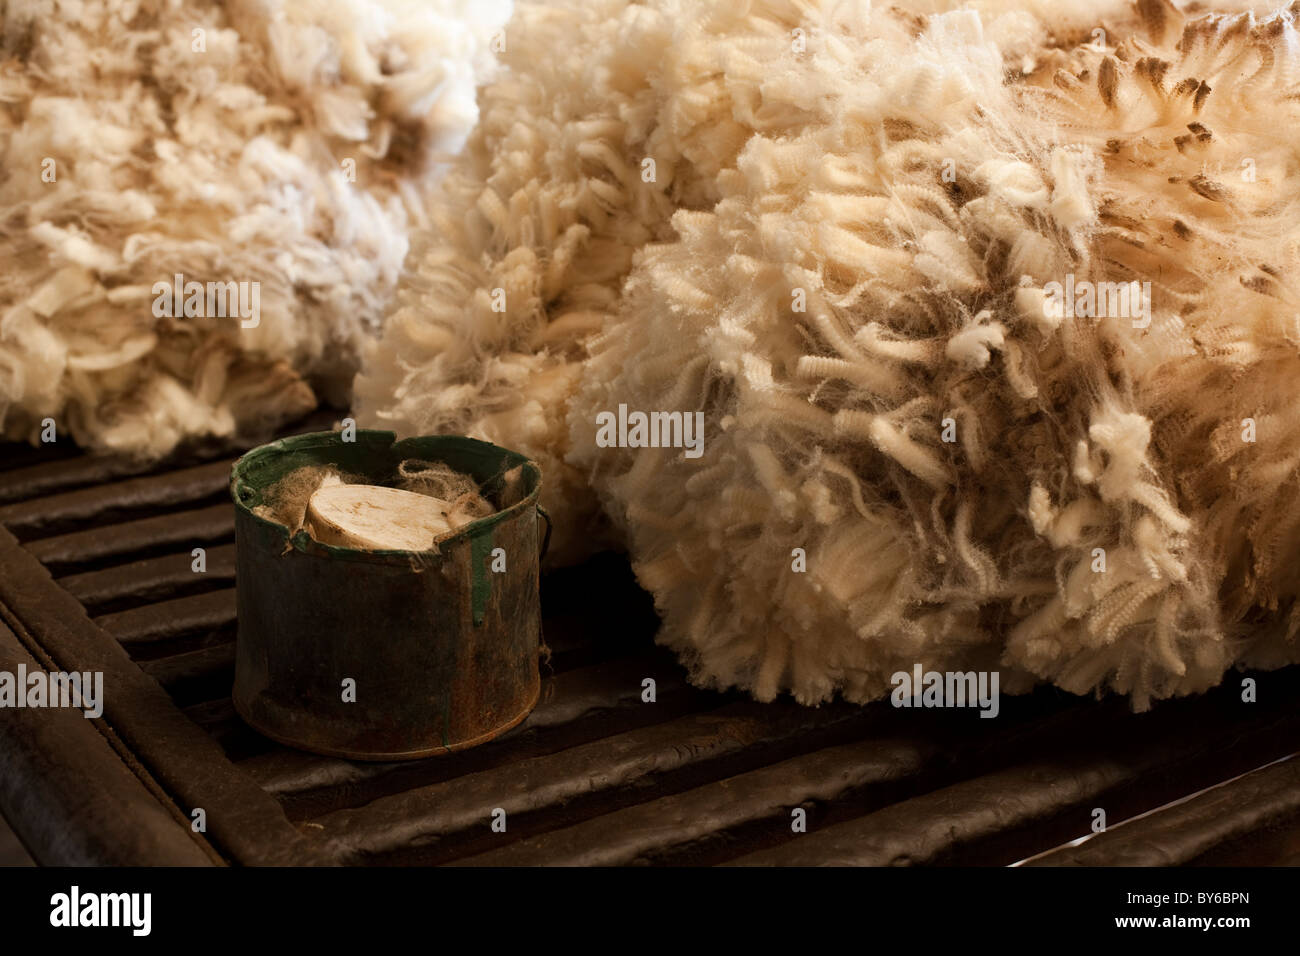 A fleece and a tin on a wool table in a shearing shed. - Stock Image